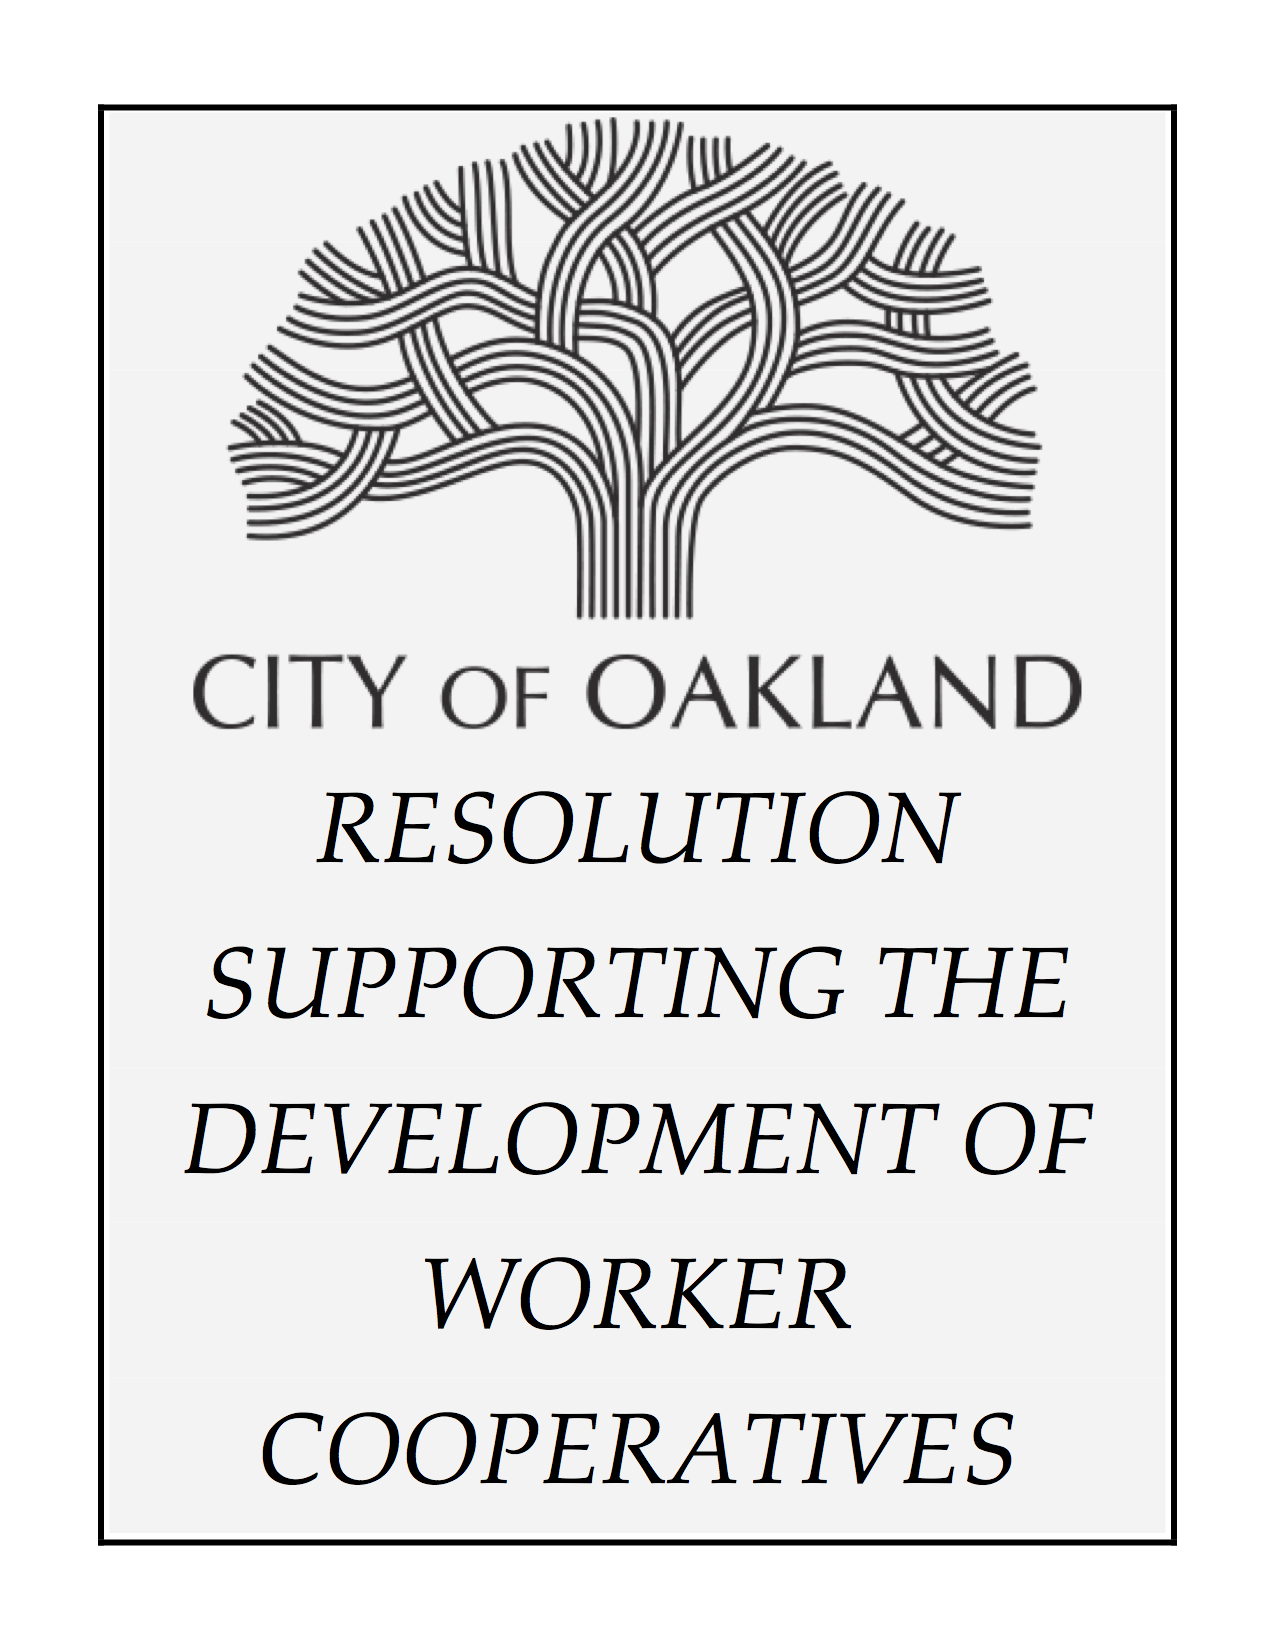 Download the Oakland City Resolution Supporting the  Development of worker cooperatives in Oakland!